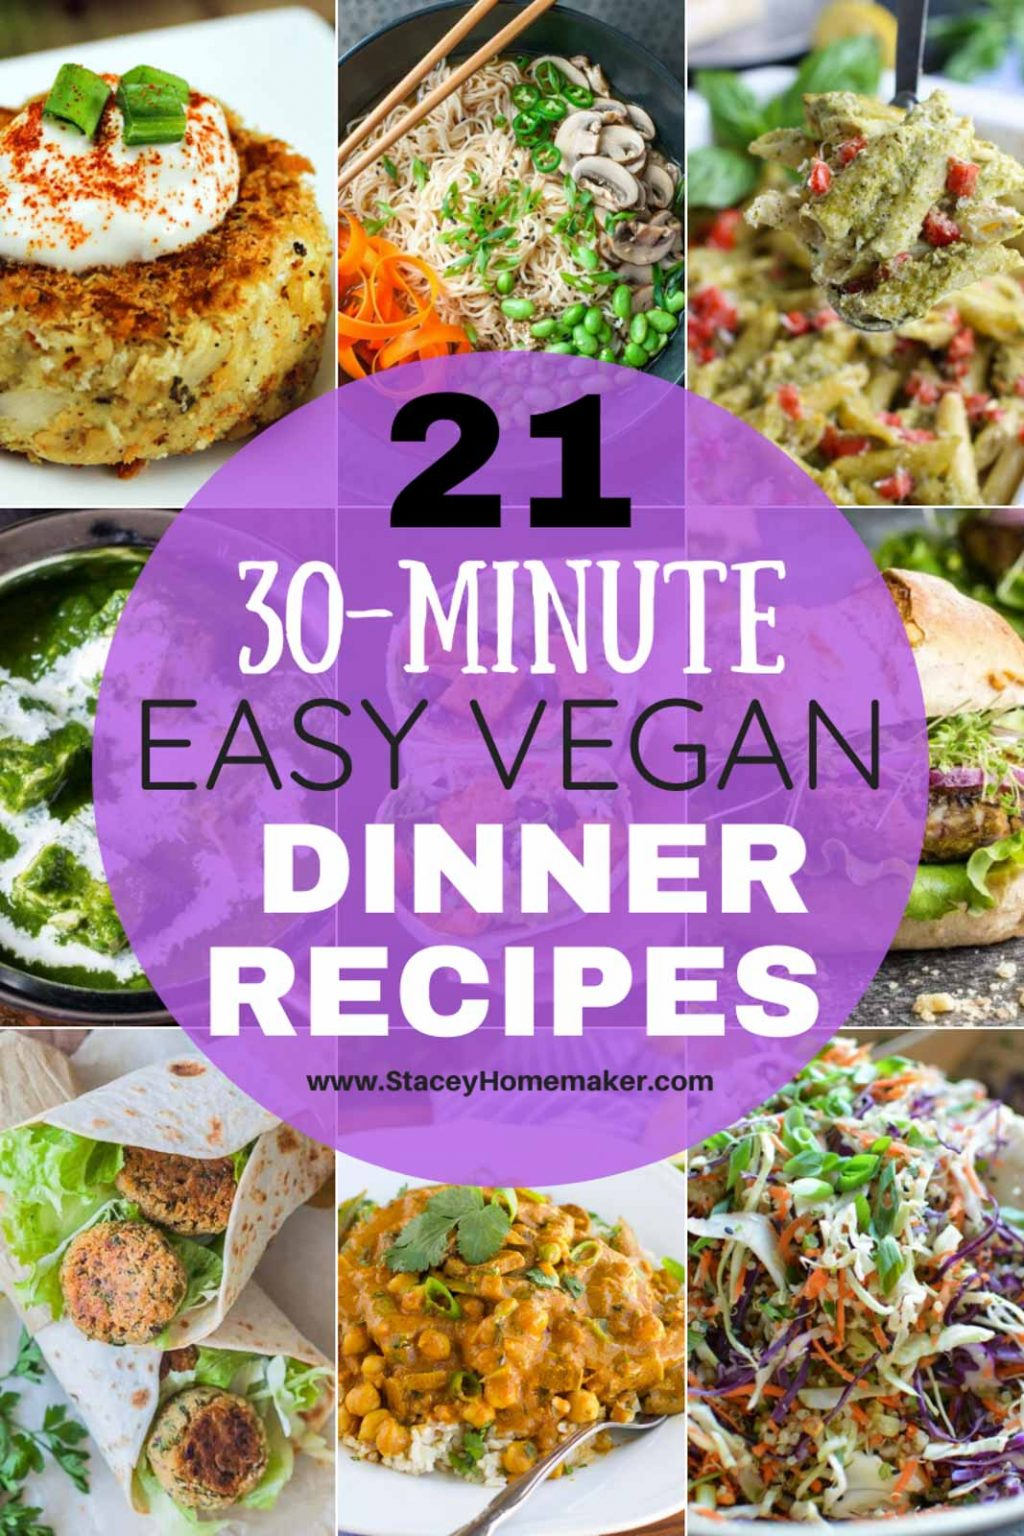 A photo collage showing multiple easy vegan dinner recipes.